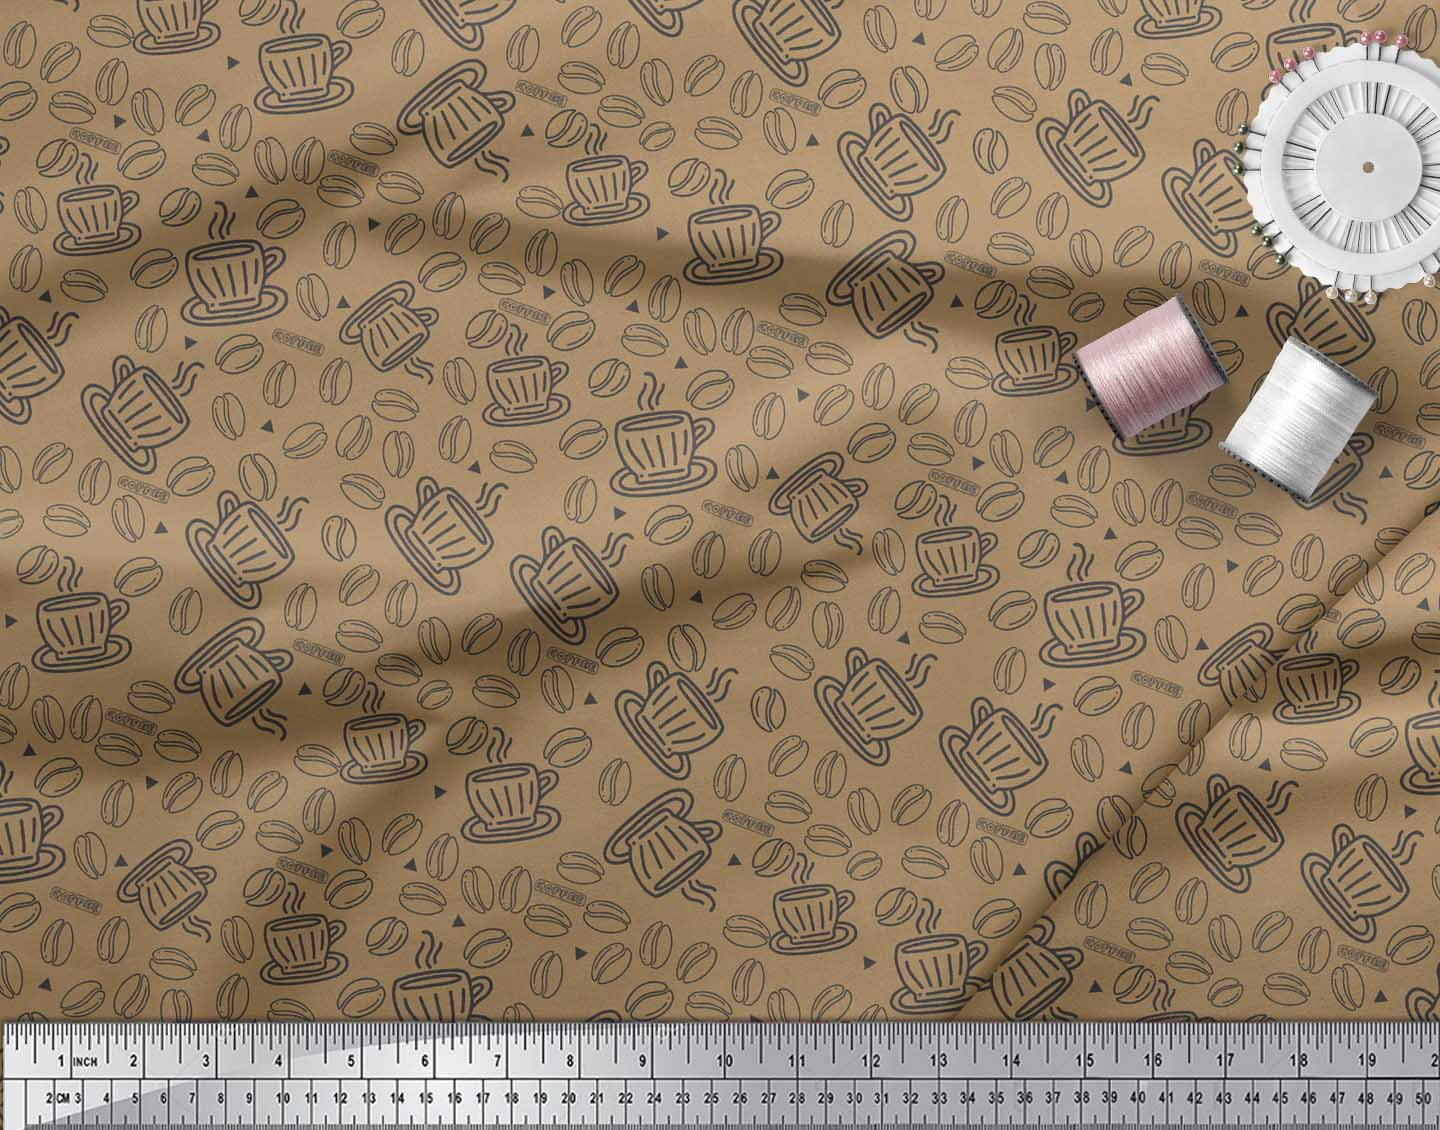 Soimoi-Brown-Cotton-Poplin-Fabric-Coffee-Food-Fabric-Prints-By-Yard-LlE thumbnail 4